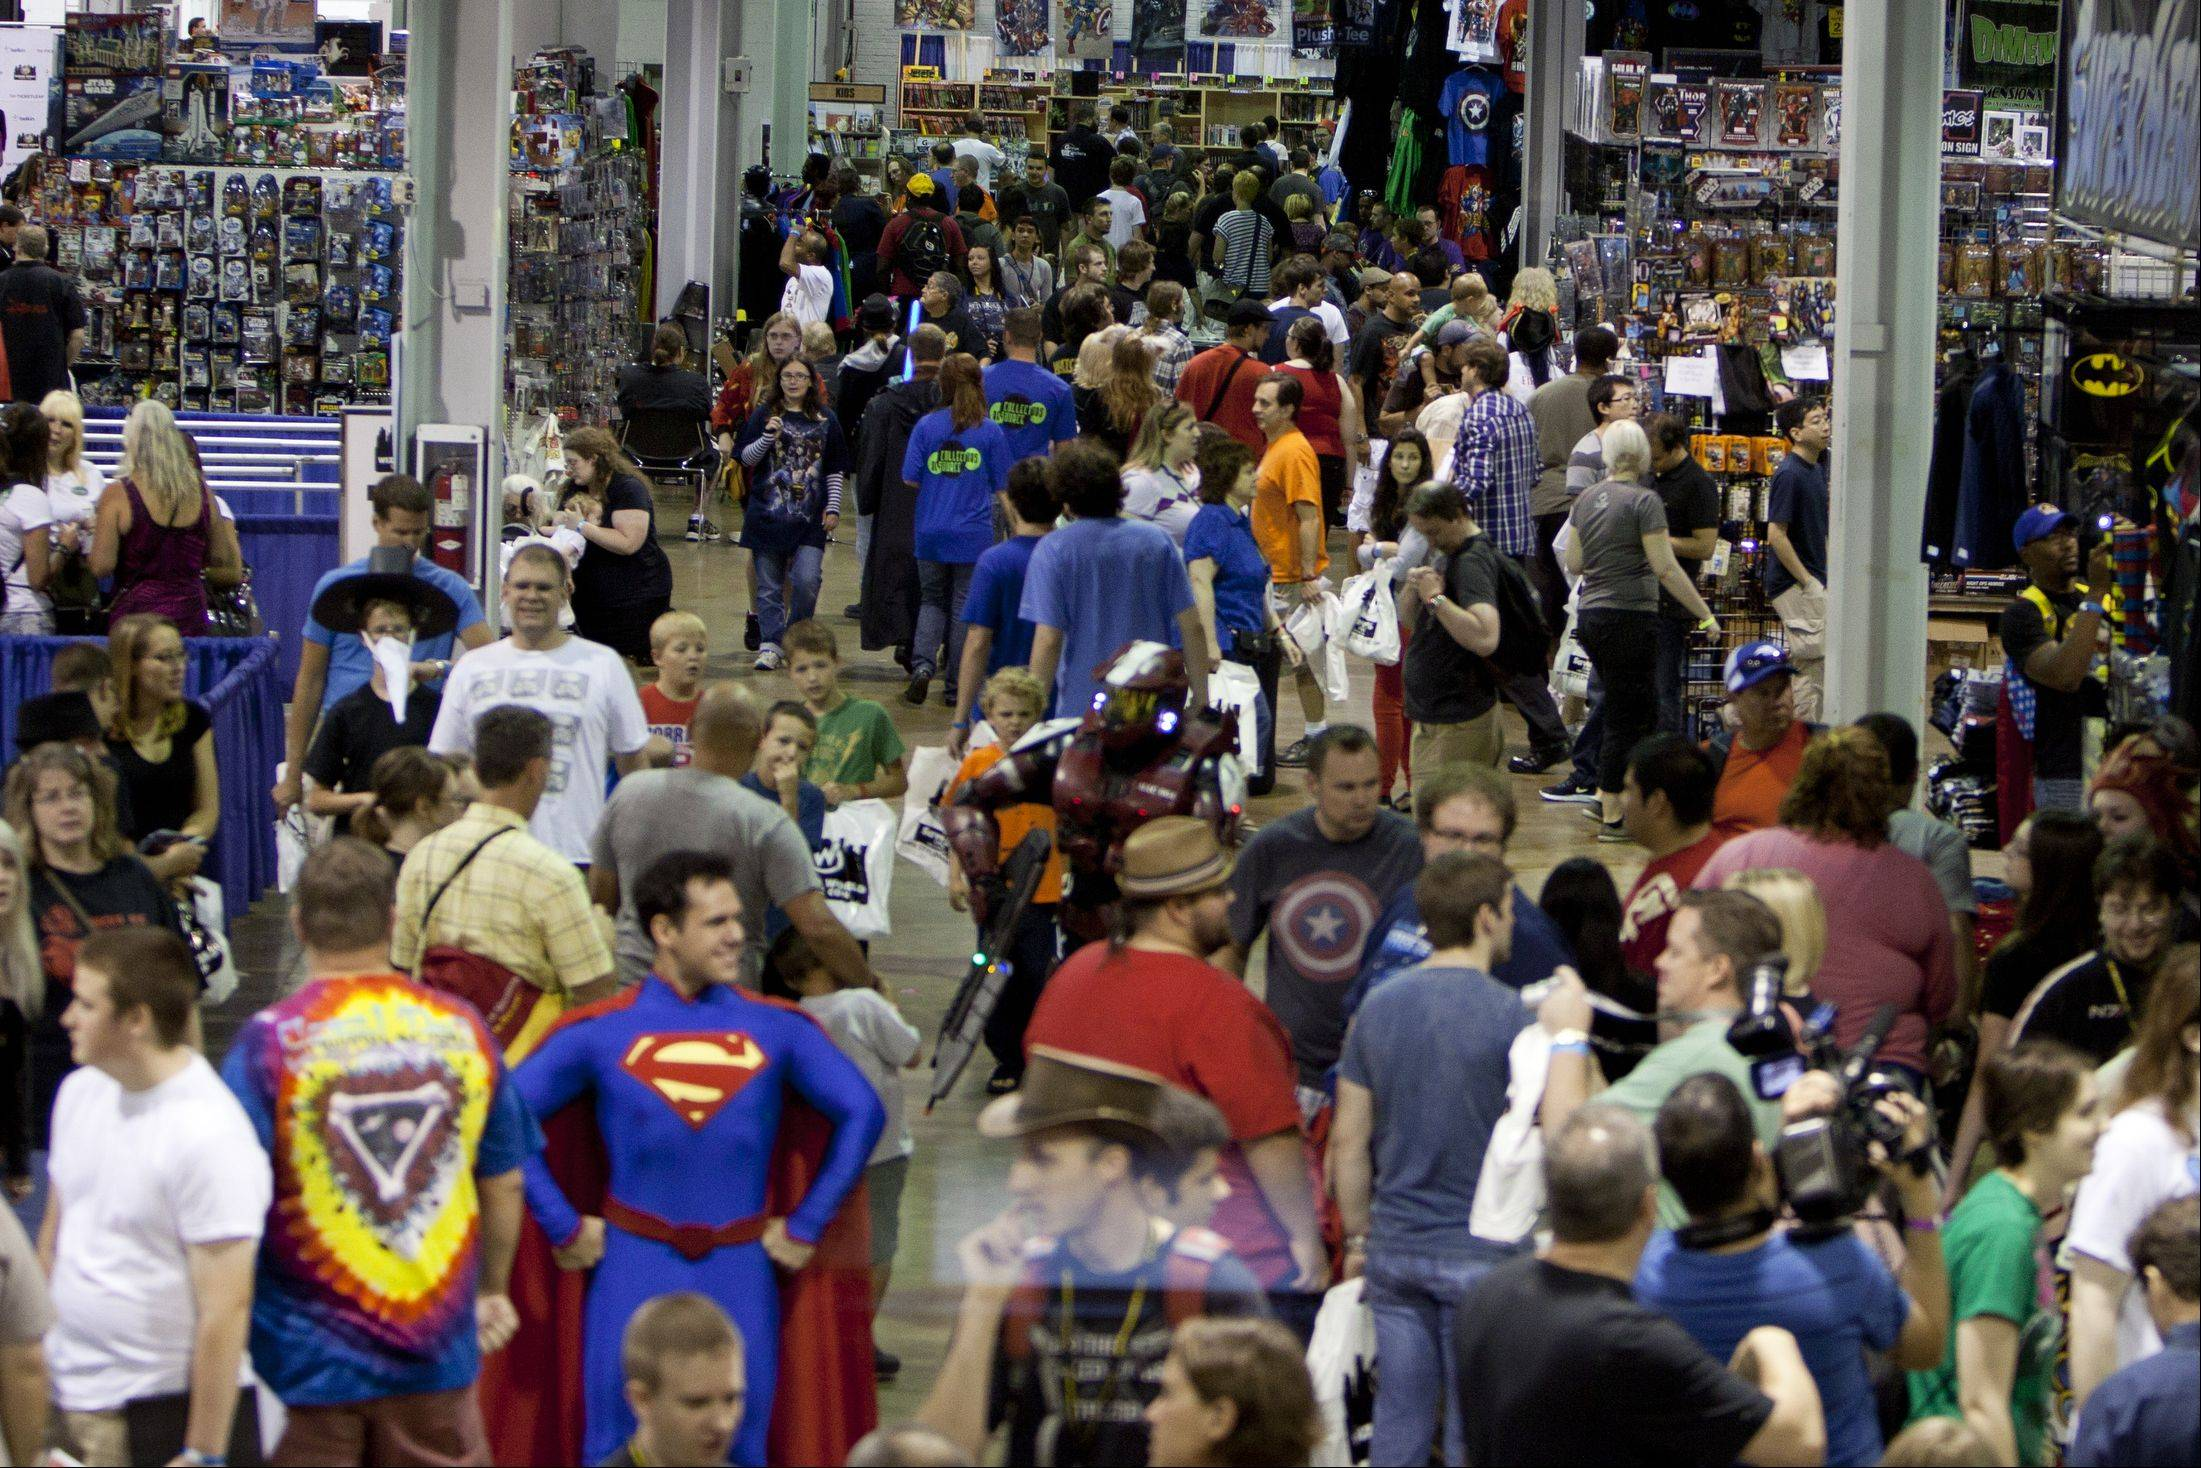 Thousands gathered at the Donald E. Stephens Convention Center over the weekend to be a part of annual Wizard World Chicago Comic Con. People could visit with comic book artists and buy all things that you would find in comics.